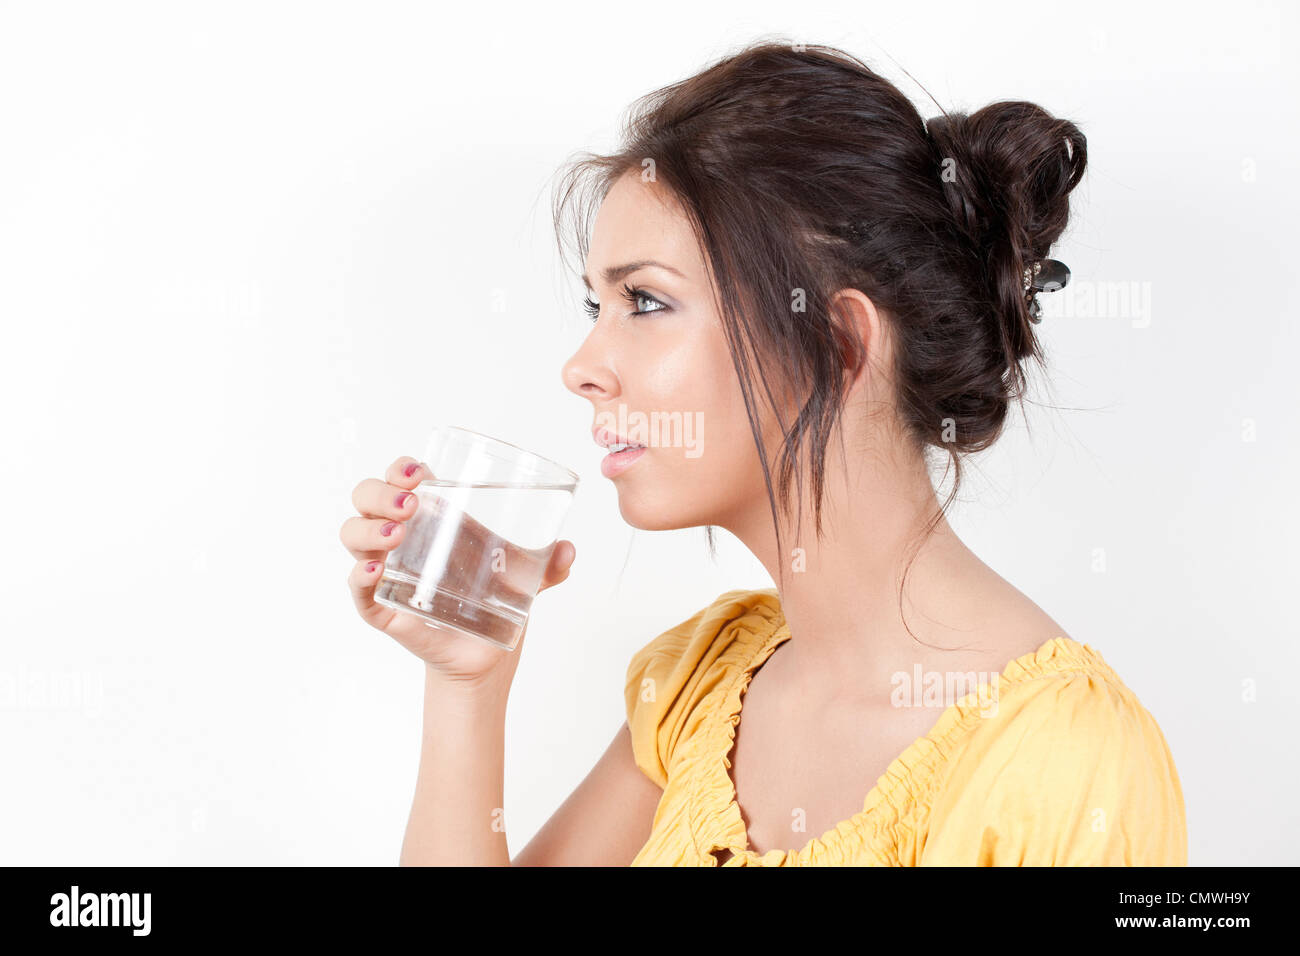 Woman drinking water - MR - Stock Image